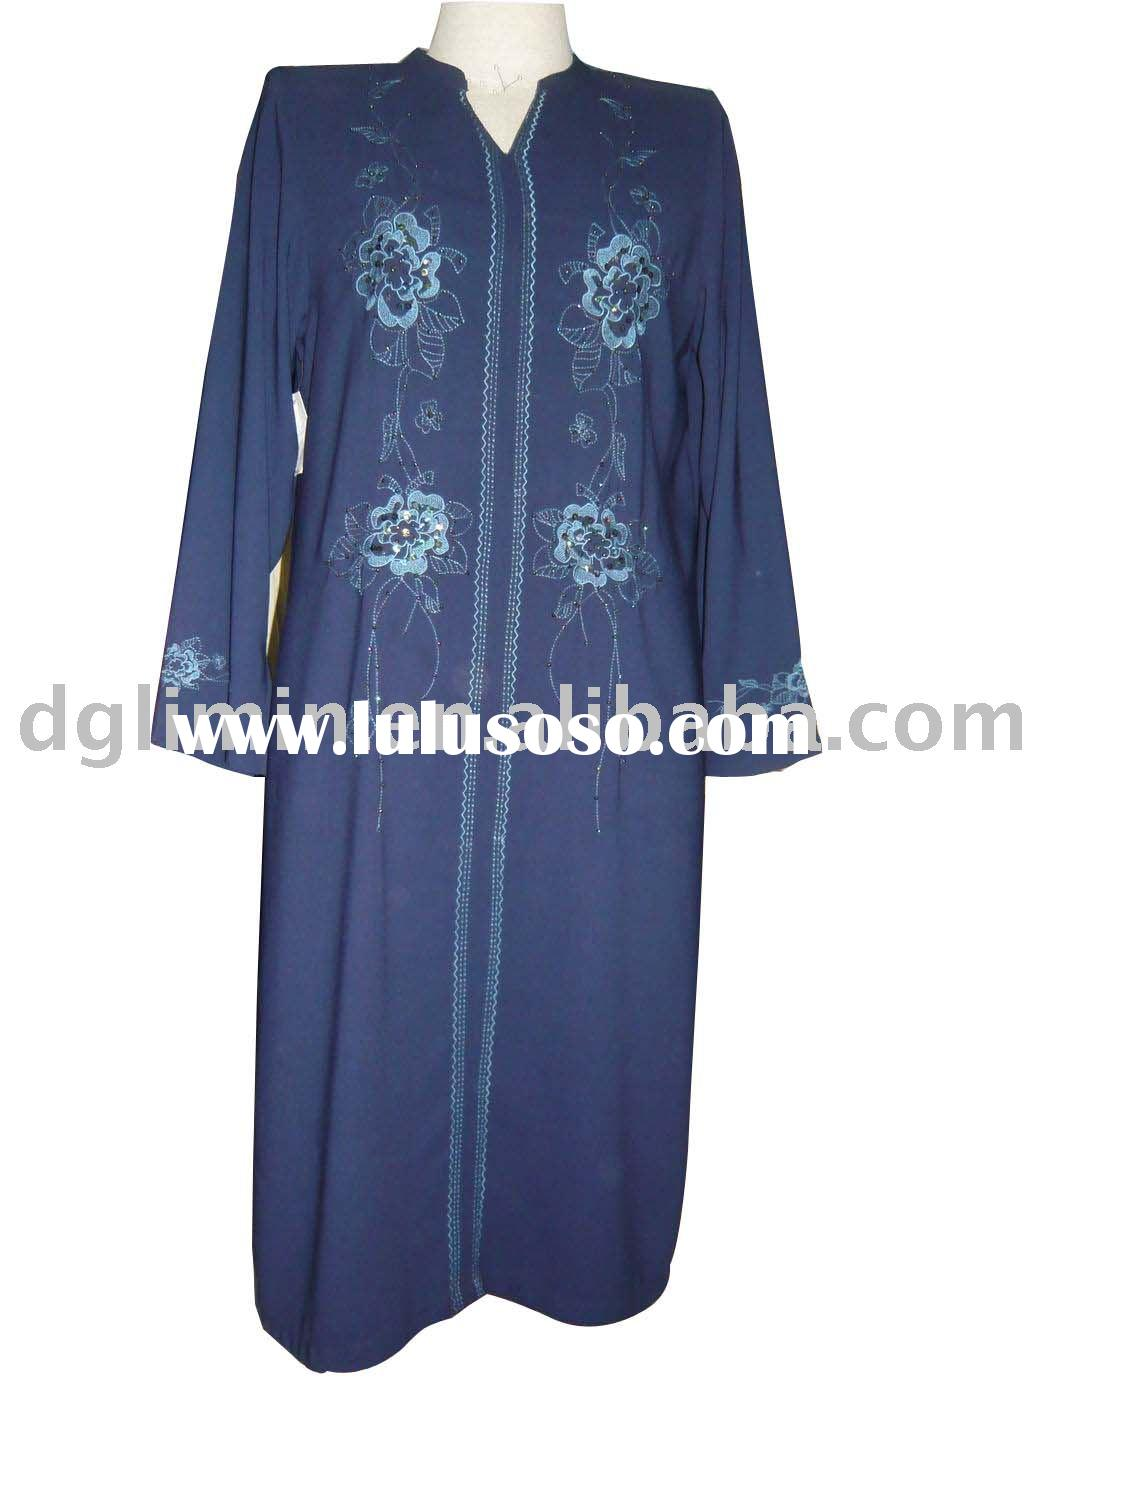 Arabian robe/Islamic wear/abaya